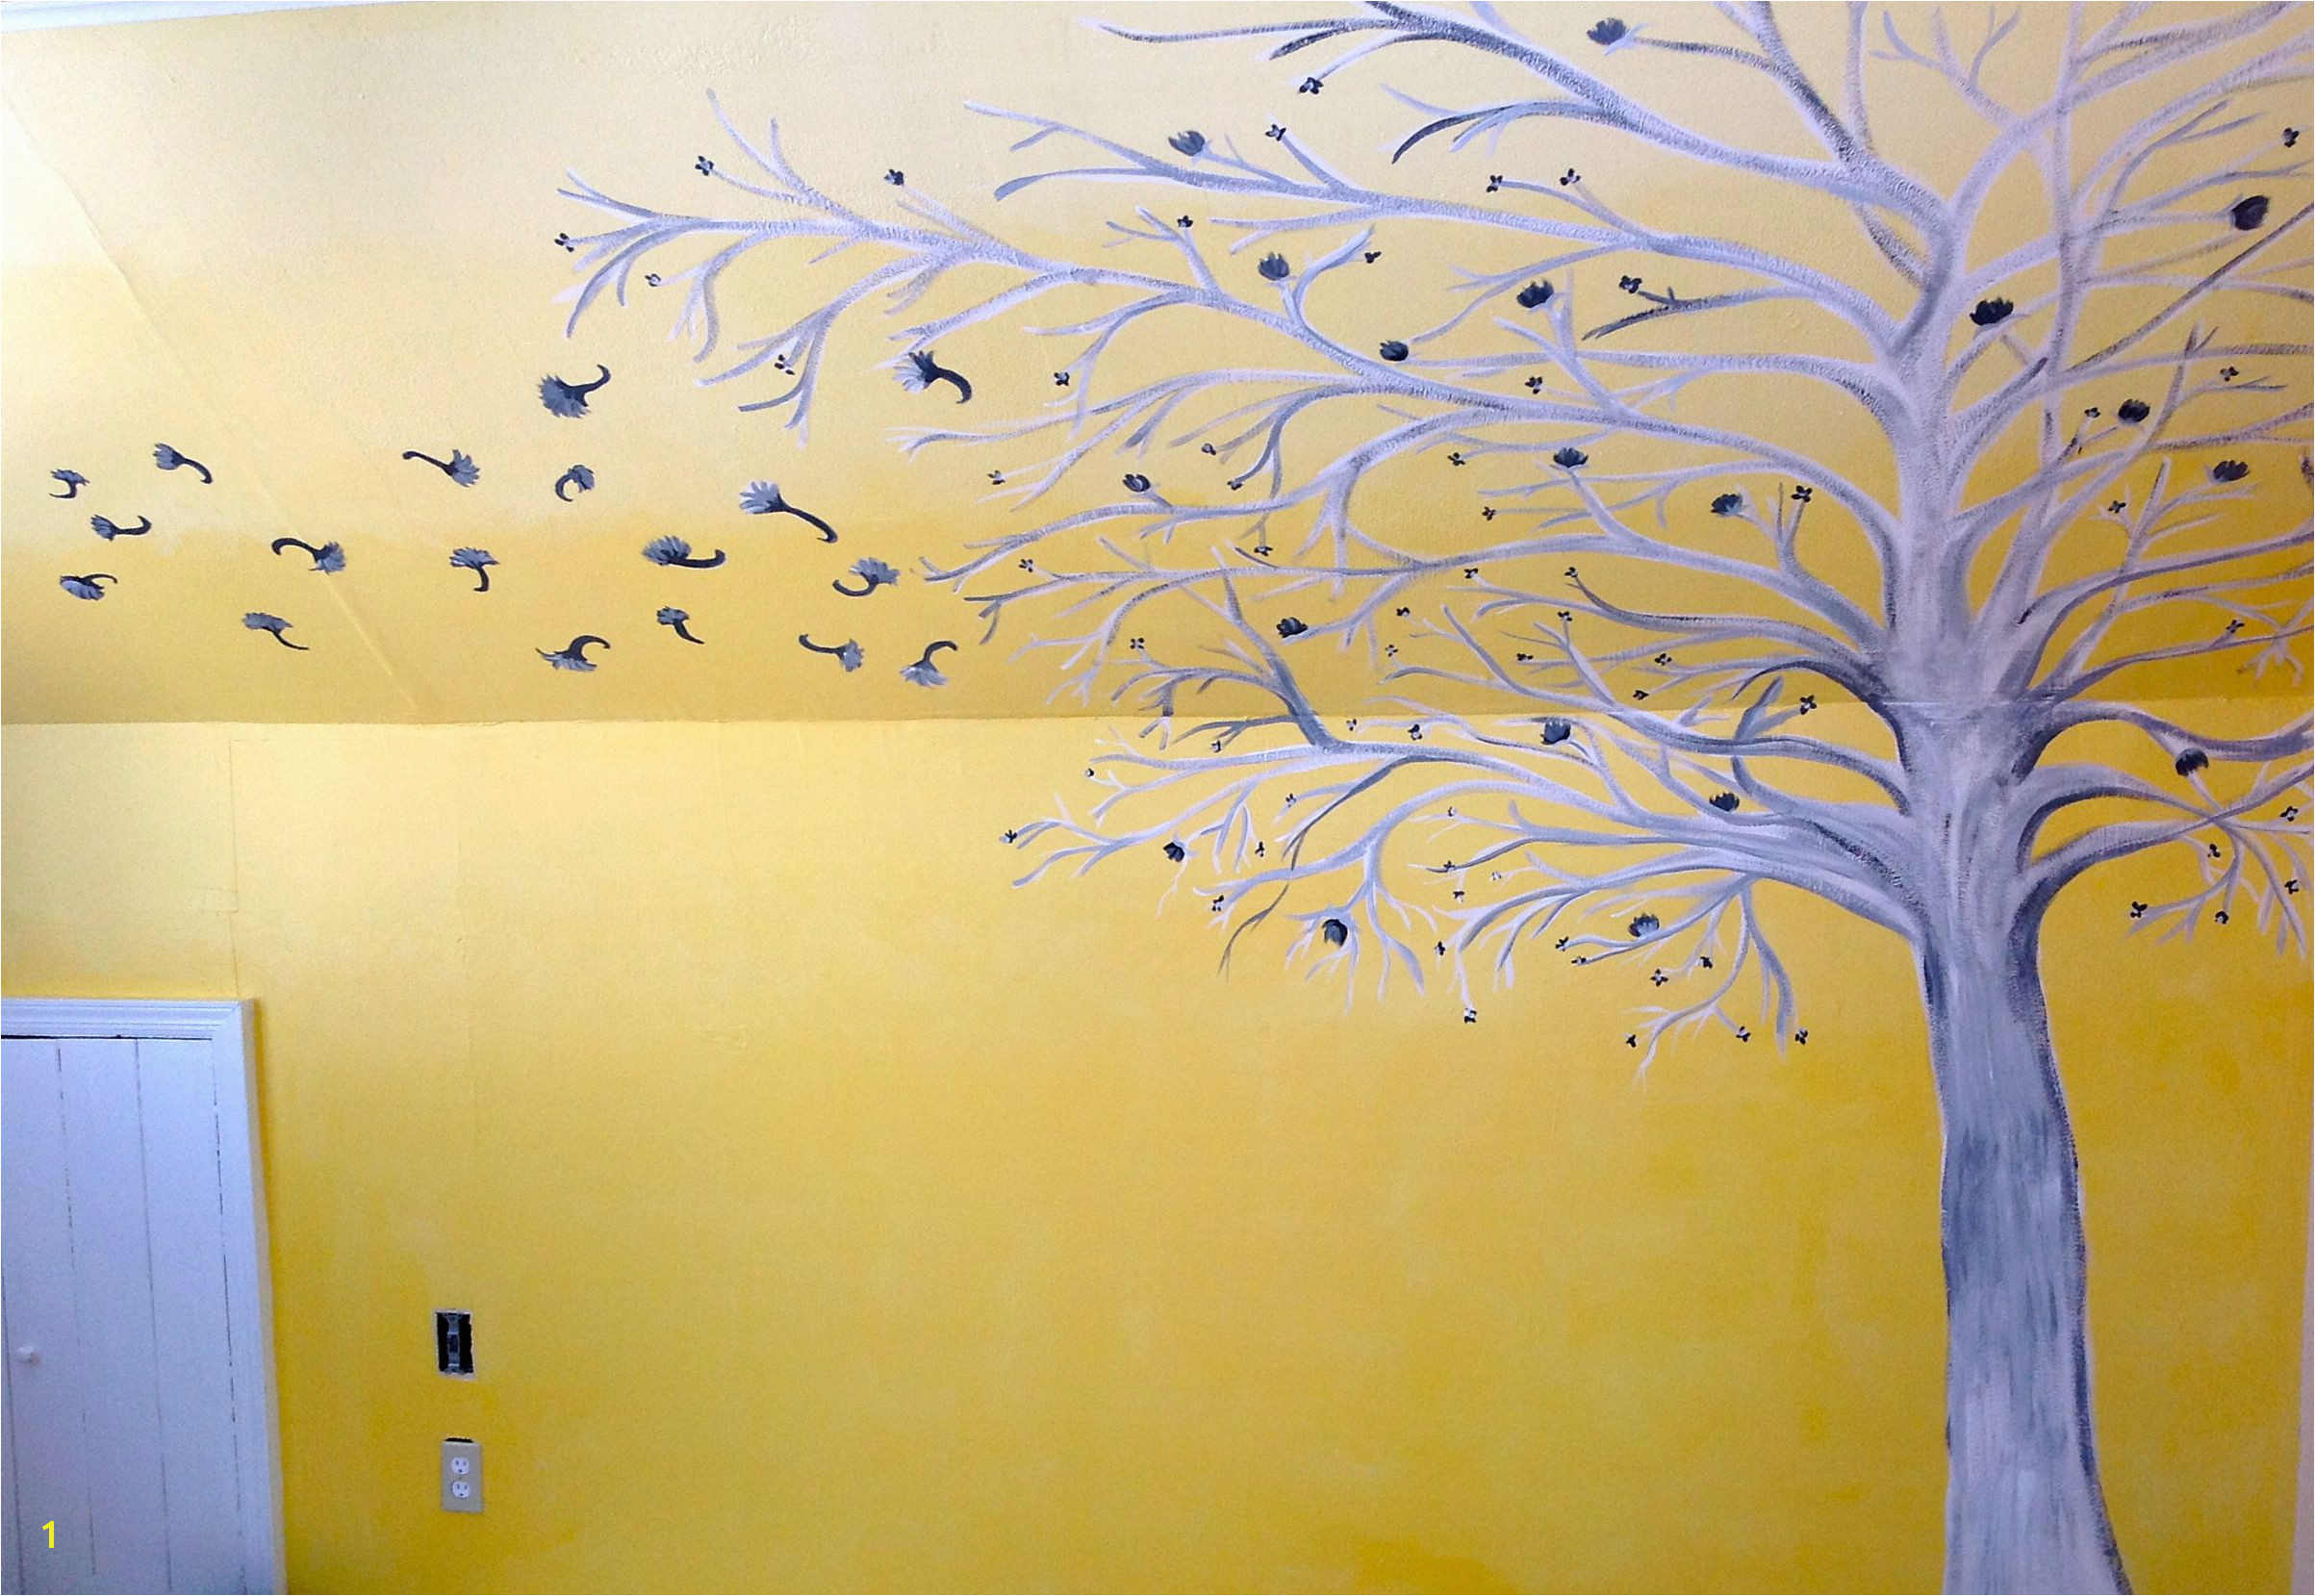 Ombre yellow white and grey painted Bedroom wall mural